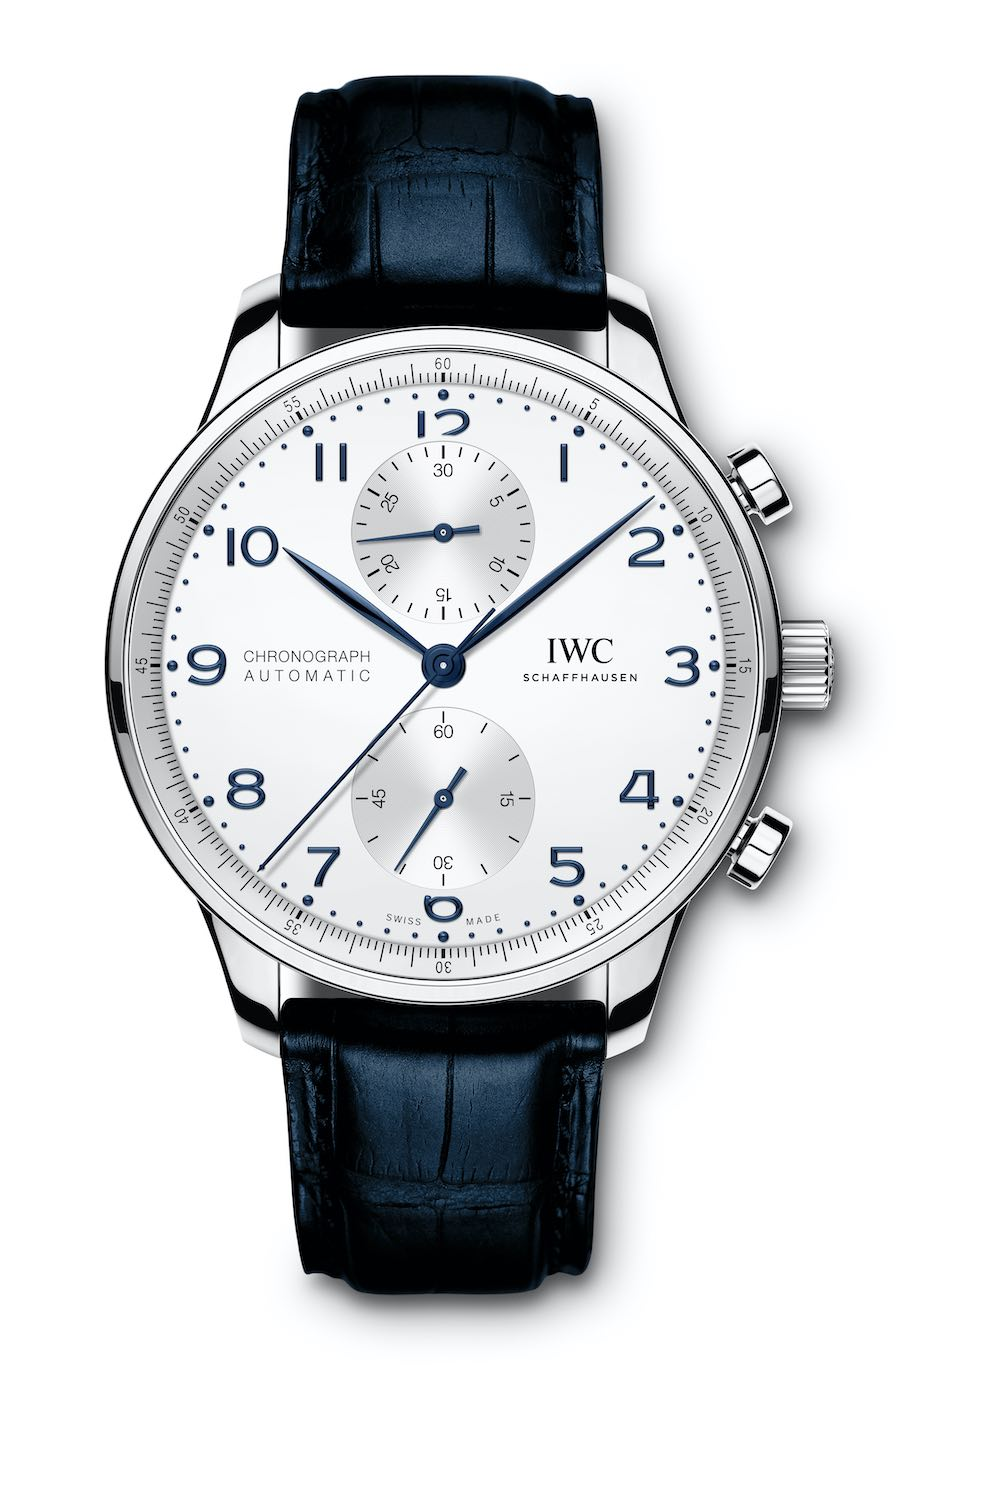 IWC Portugieser Chronograph iw3716 in-house calibre 69335 - iw371605